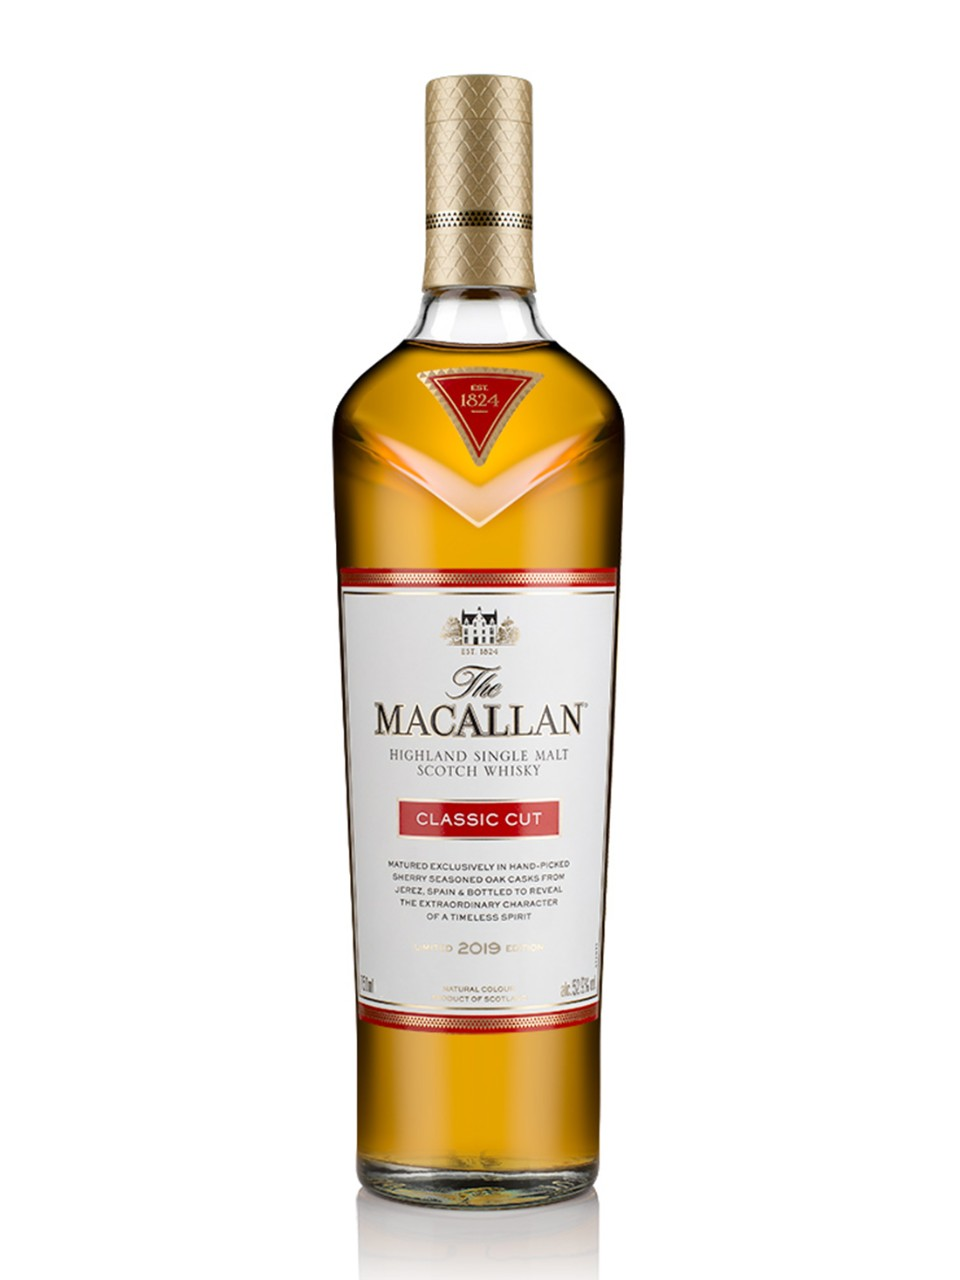 The Macallan Classic Cut from LCBO